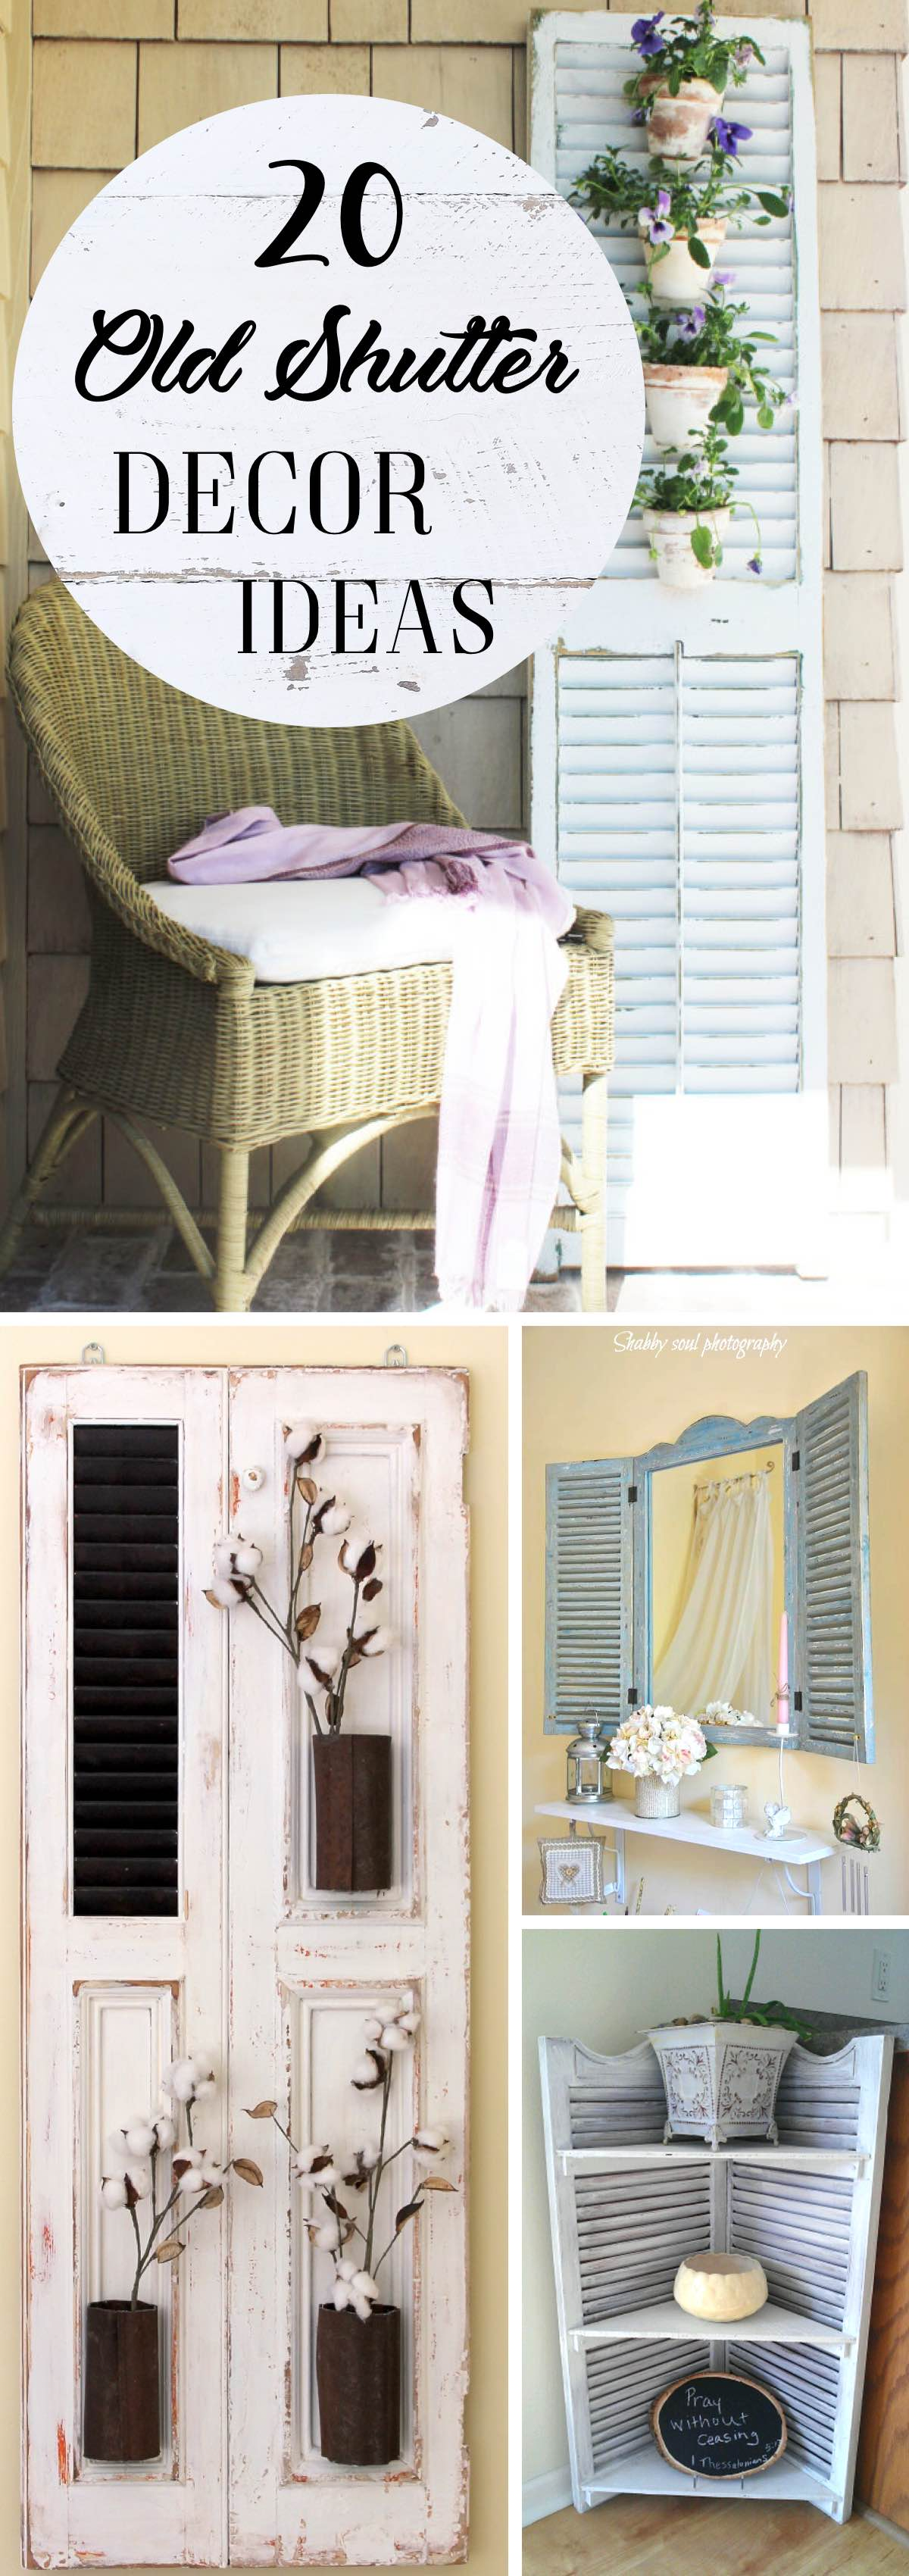 Get Inspired With These 20 Old Shutter Decor Ideas